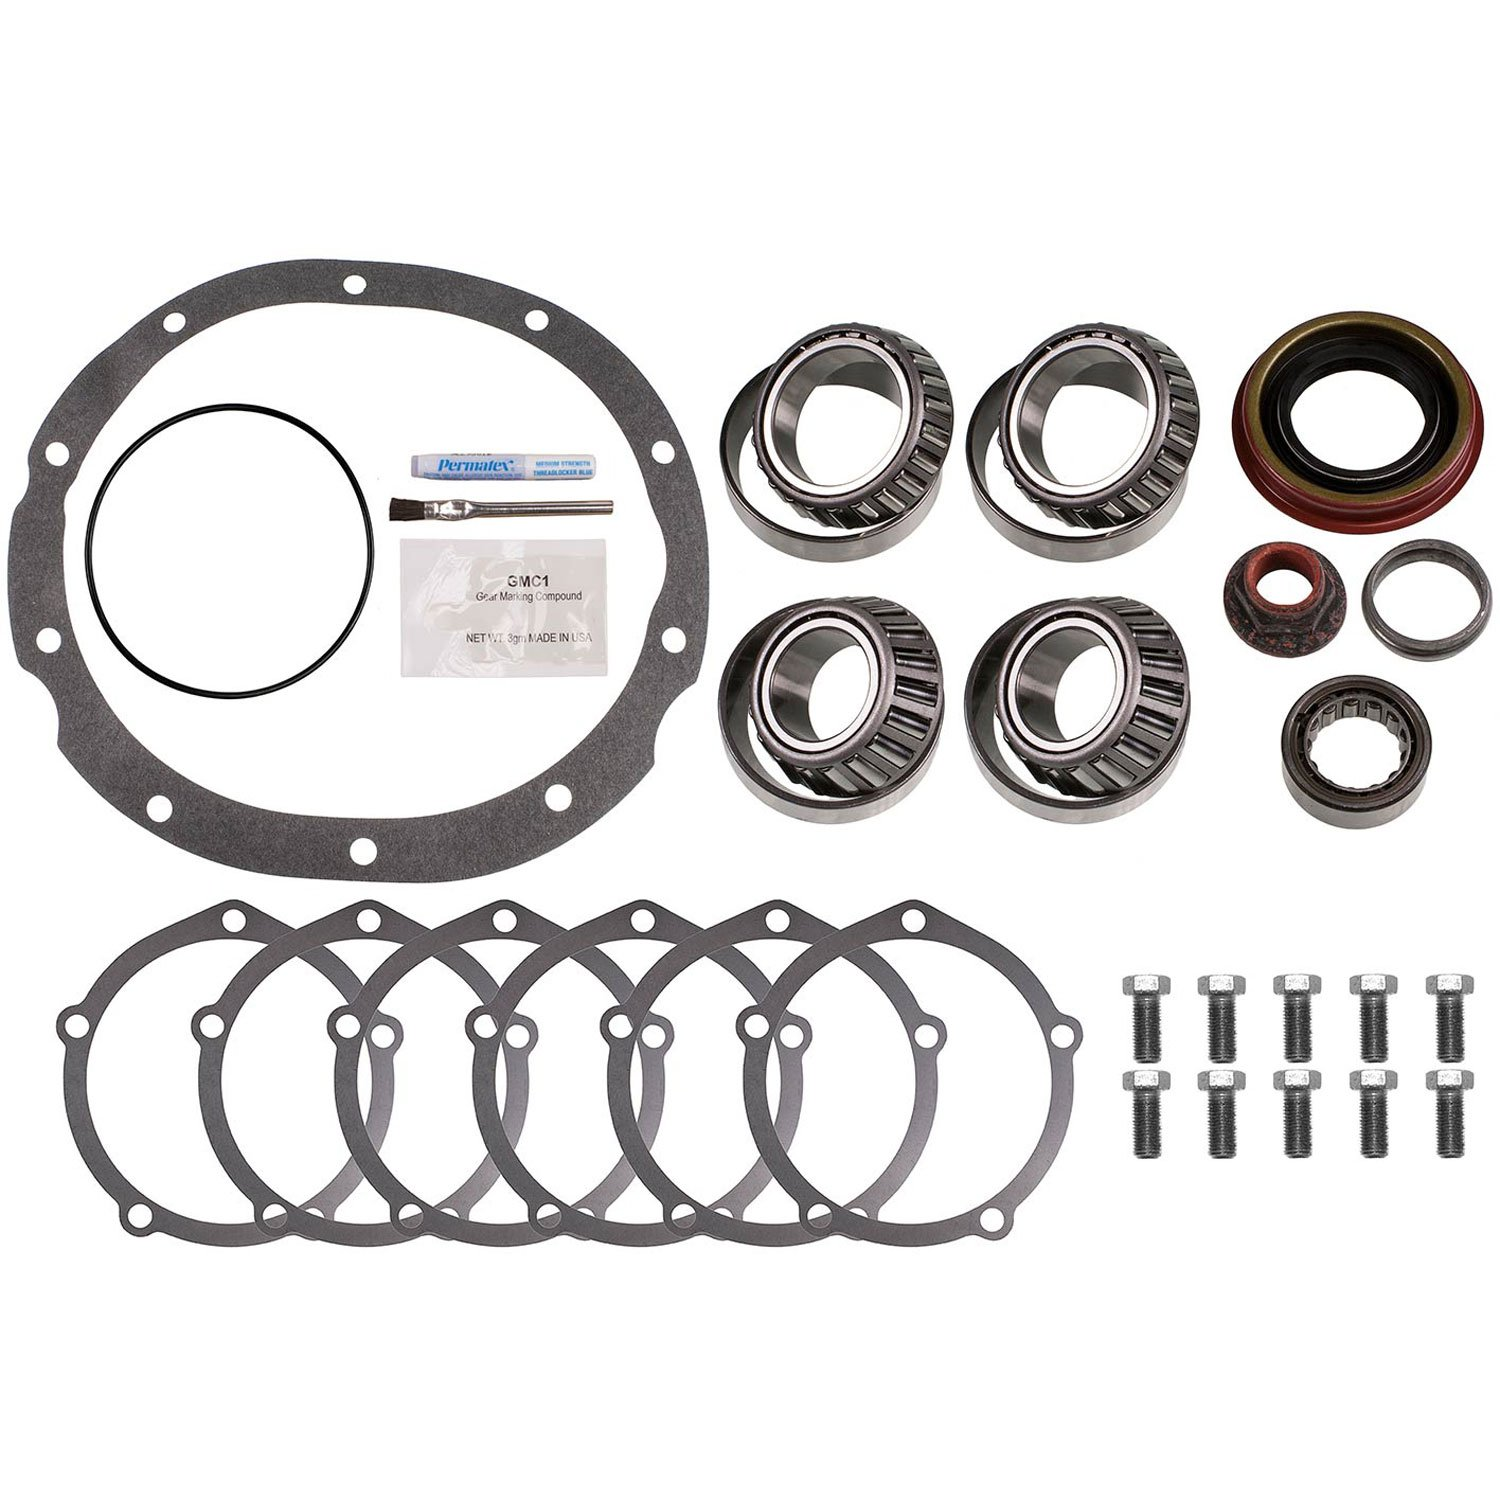 Motive Gear R9R28MKT Master Bearing Kit with Timken Bearings (Ford 9'' 2.891'' BORE LM50131)